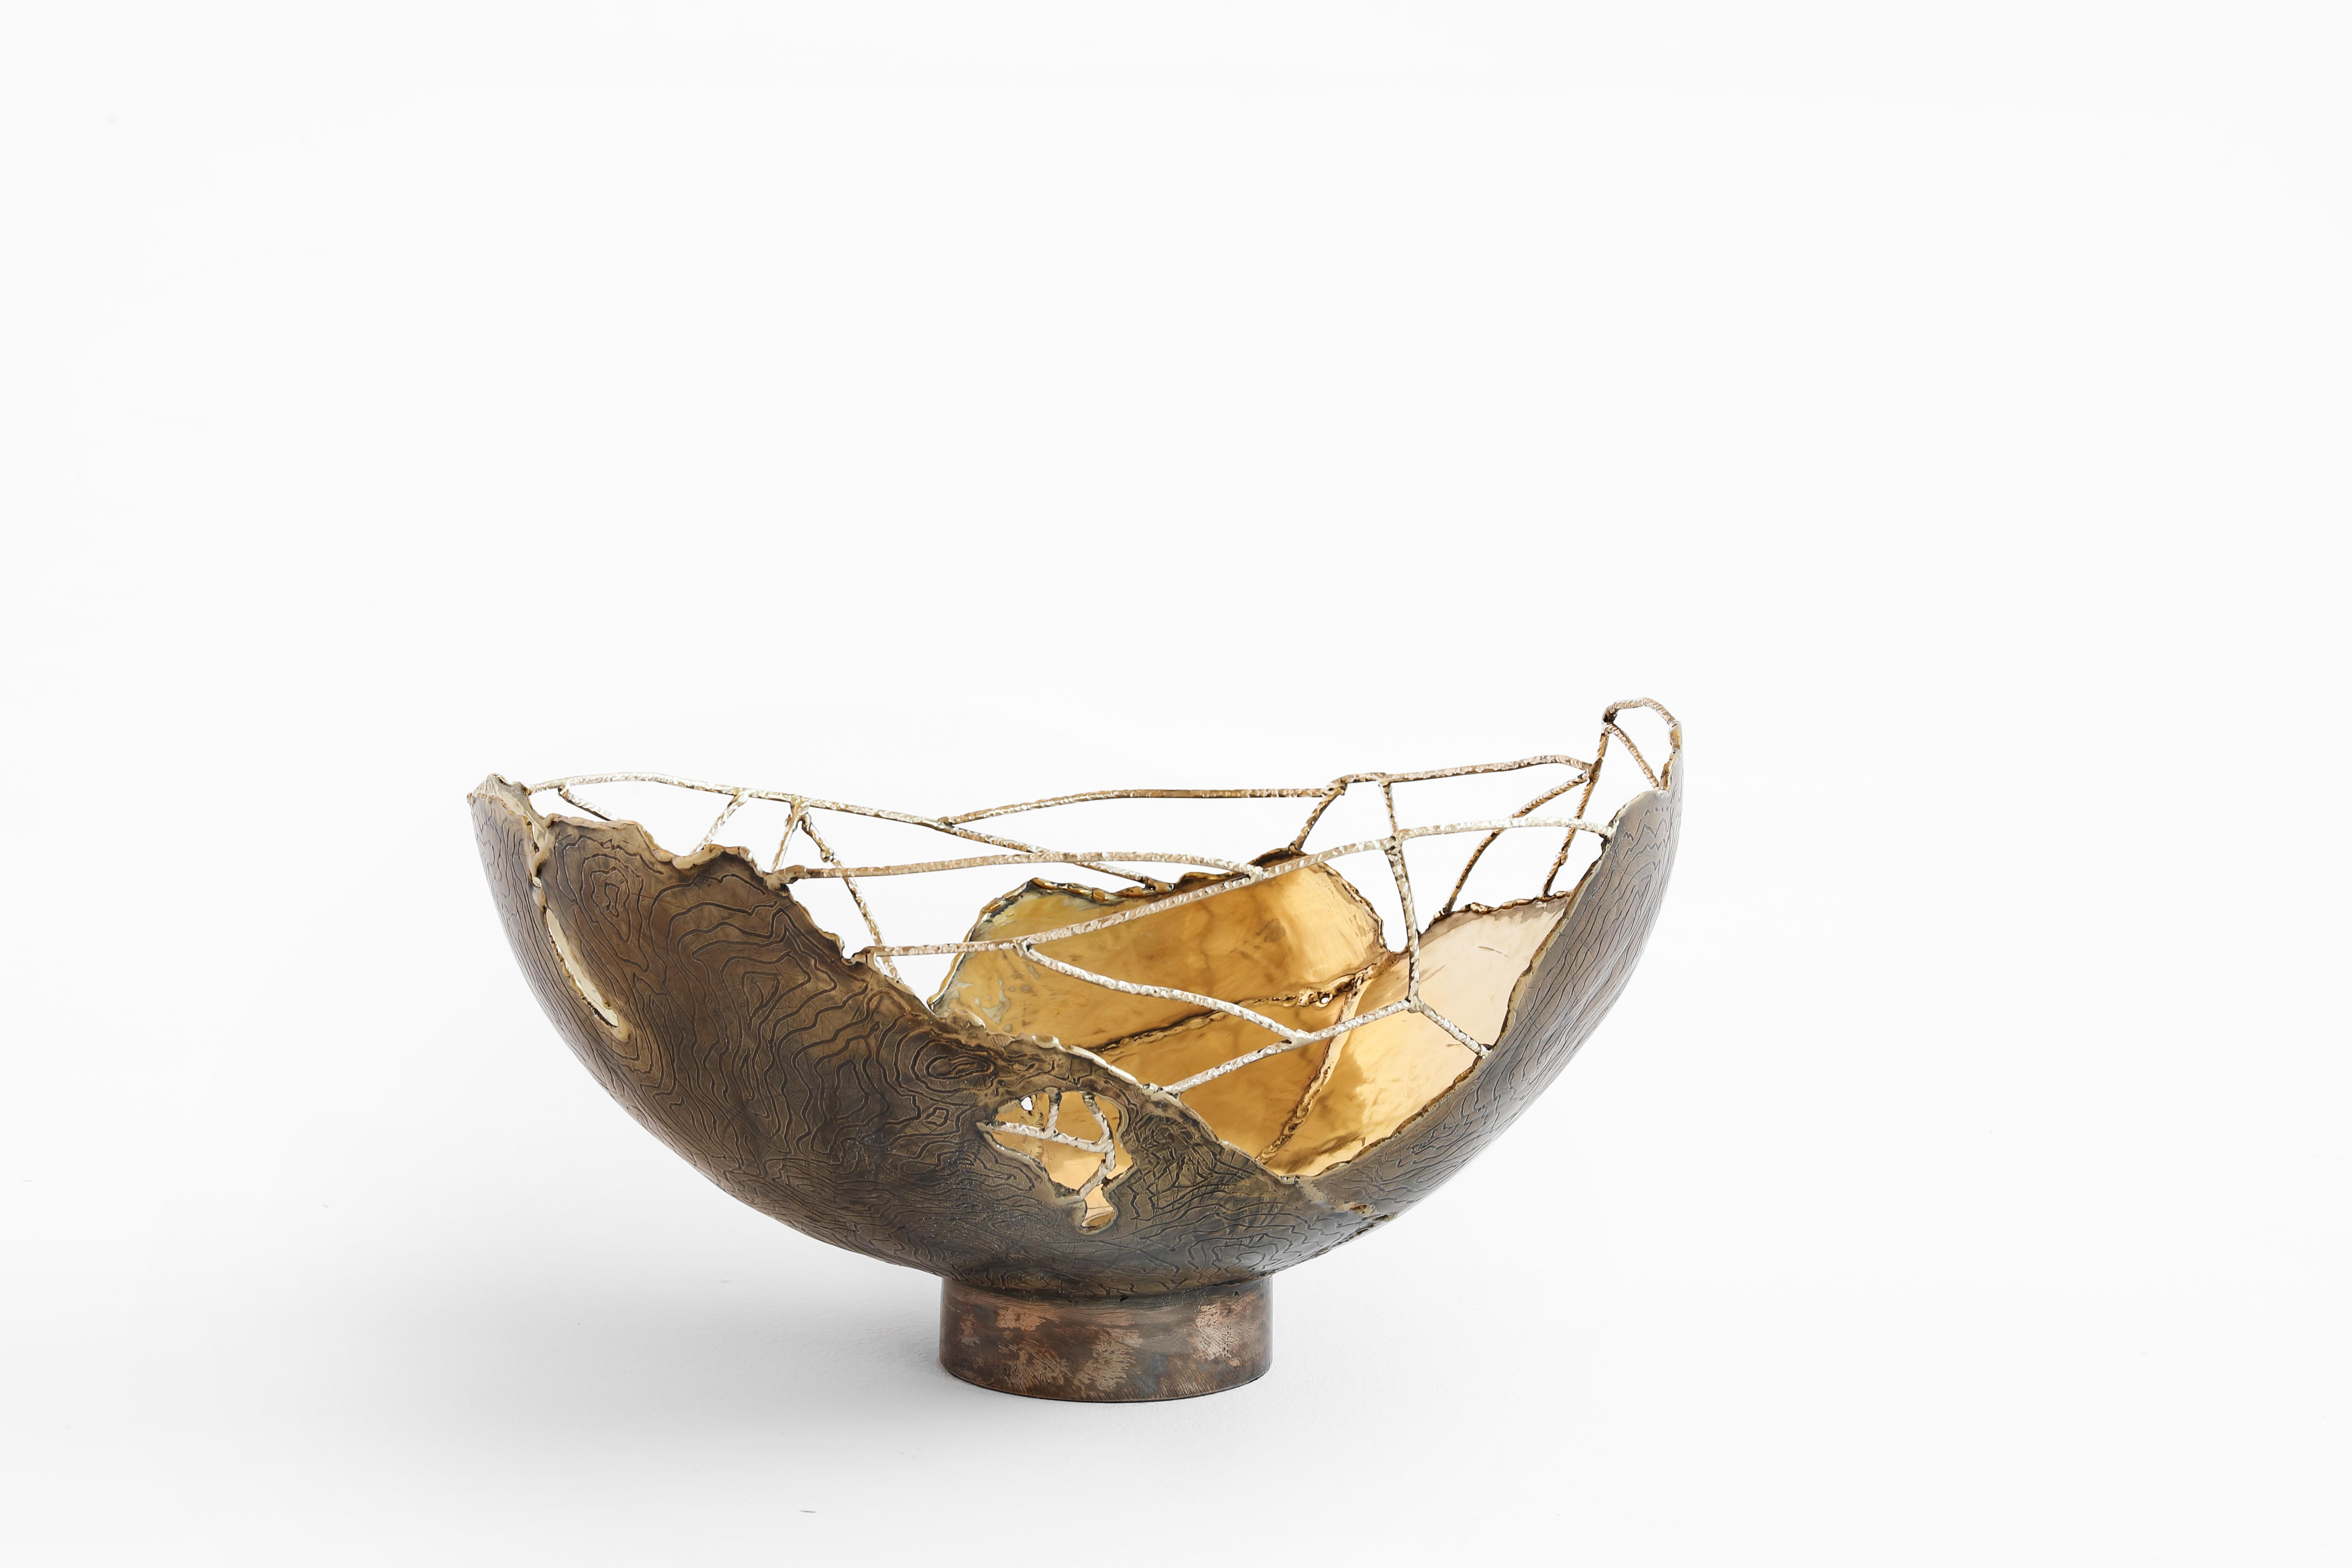 Bark Bowl - Brass wires then complete the shapes. Like a spider's web that joins the